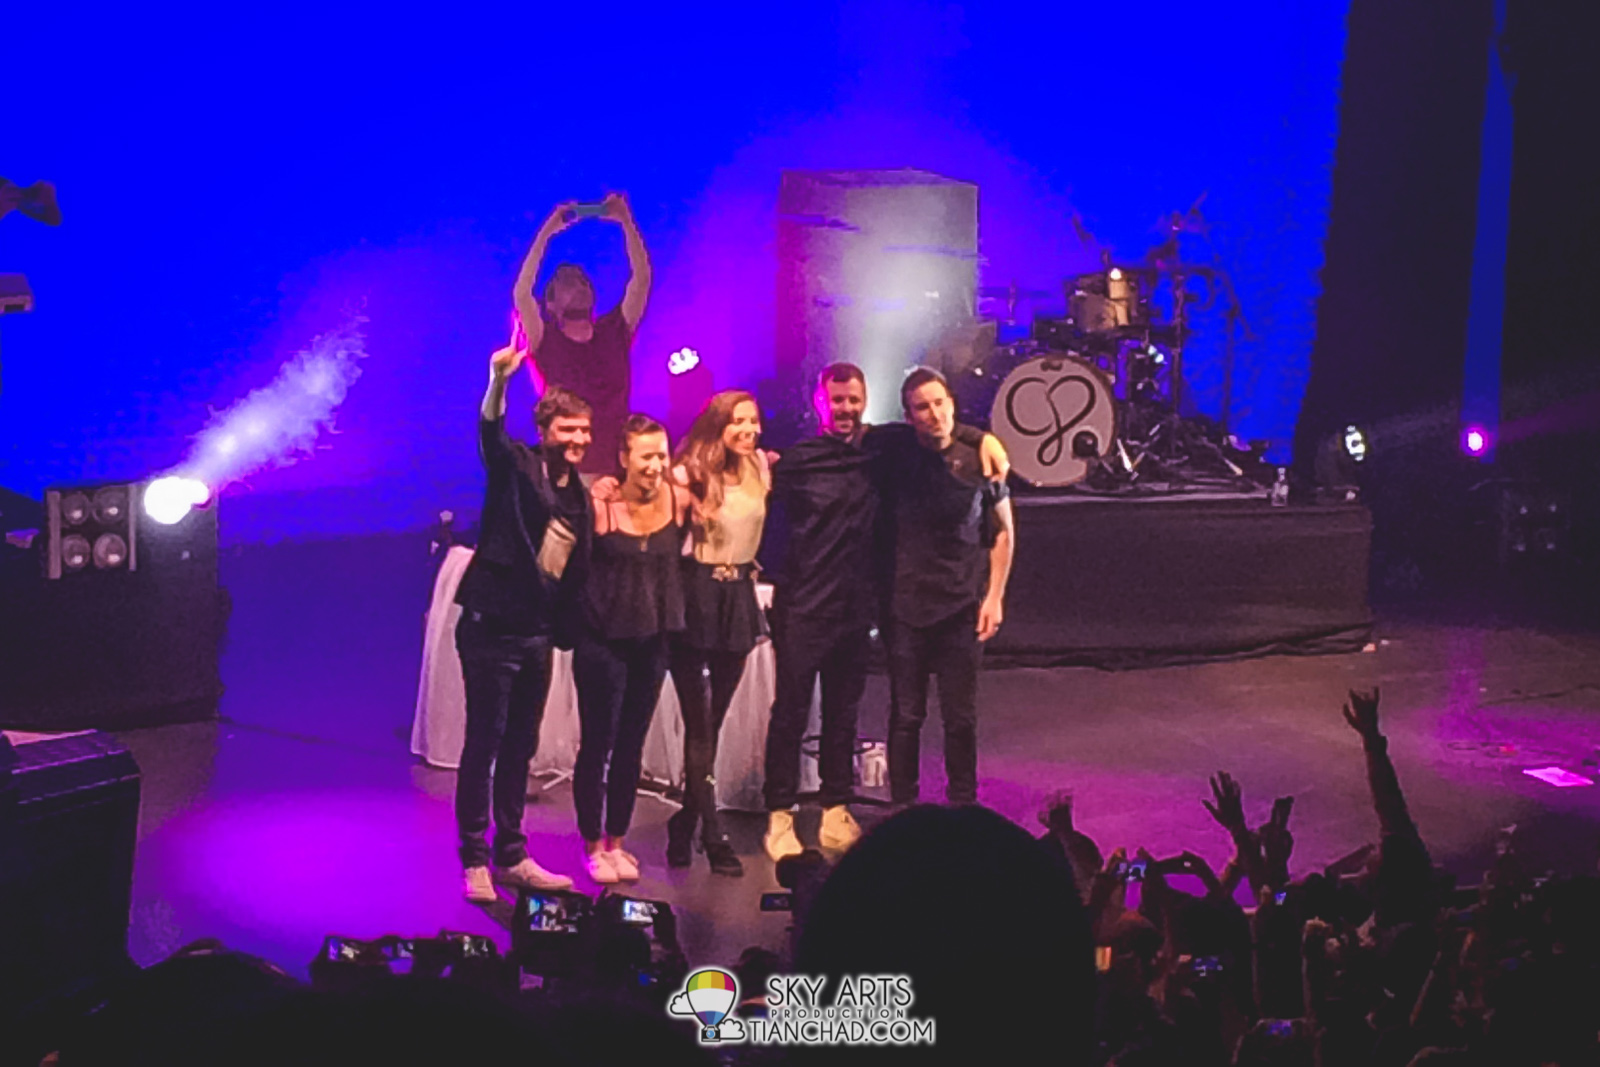 A little group photo of Christina Perri and the band  thanking Malaysia awesome fans =D